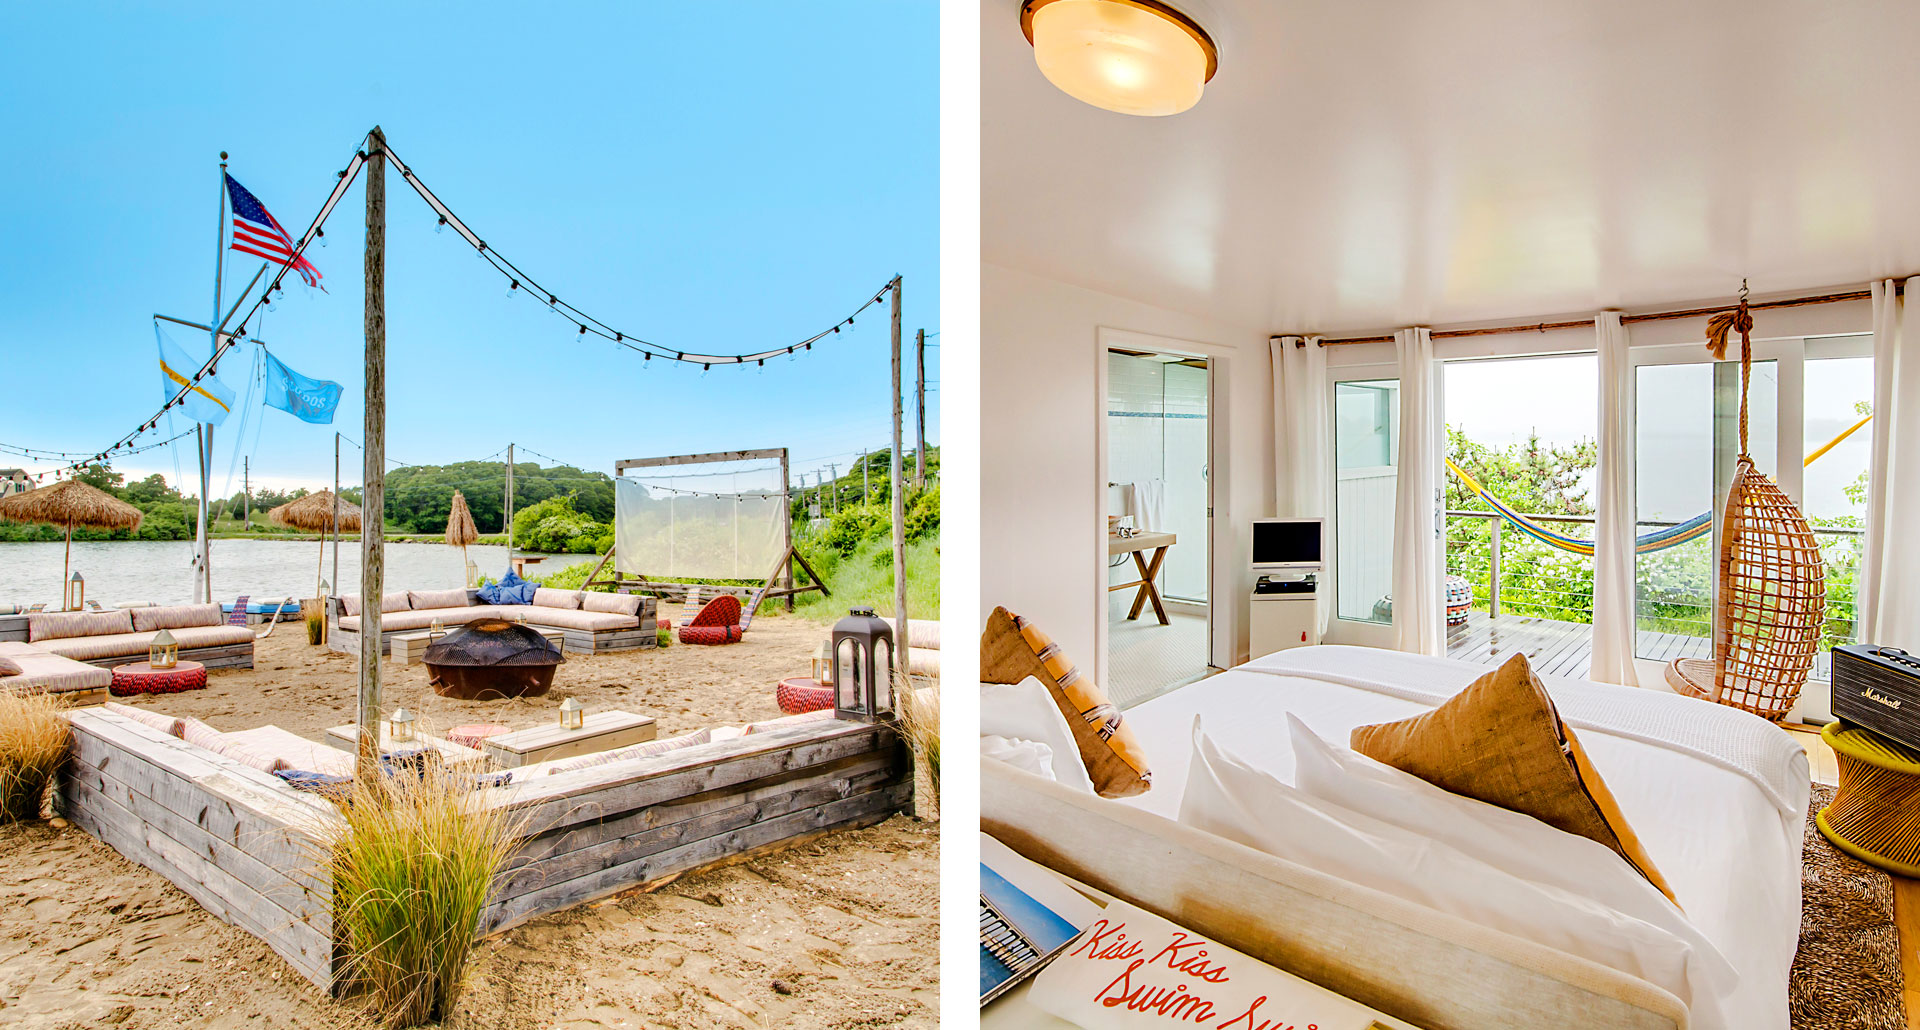 The Surf Lodge - boutique hotel in Montauk